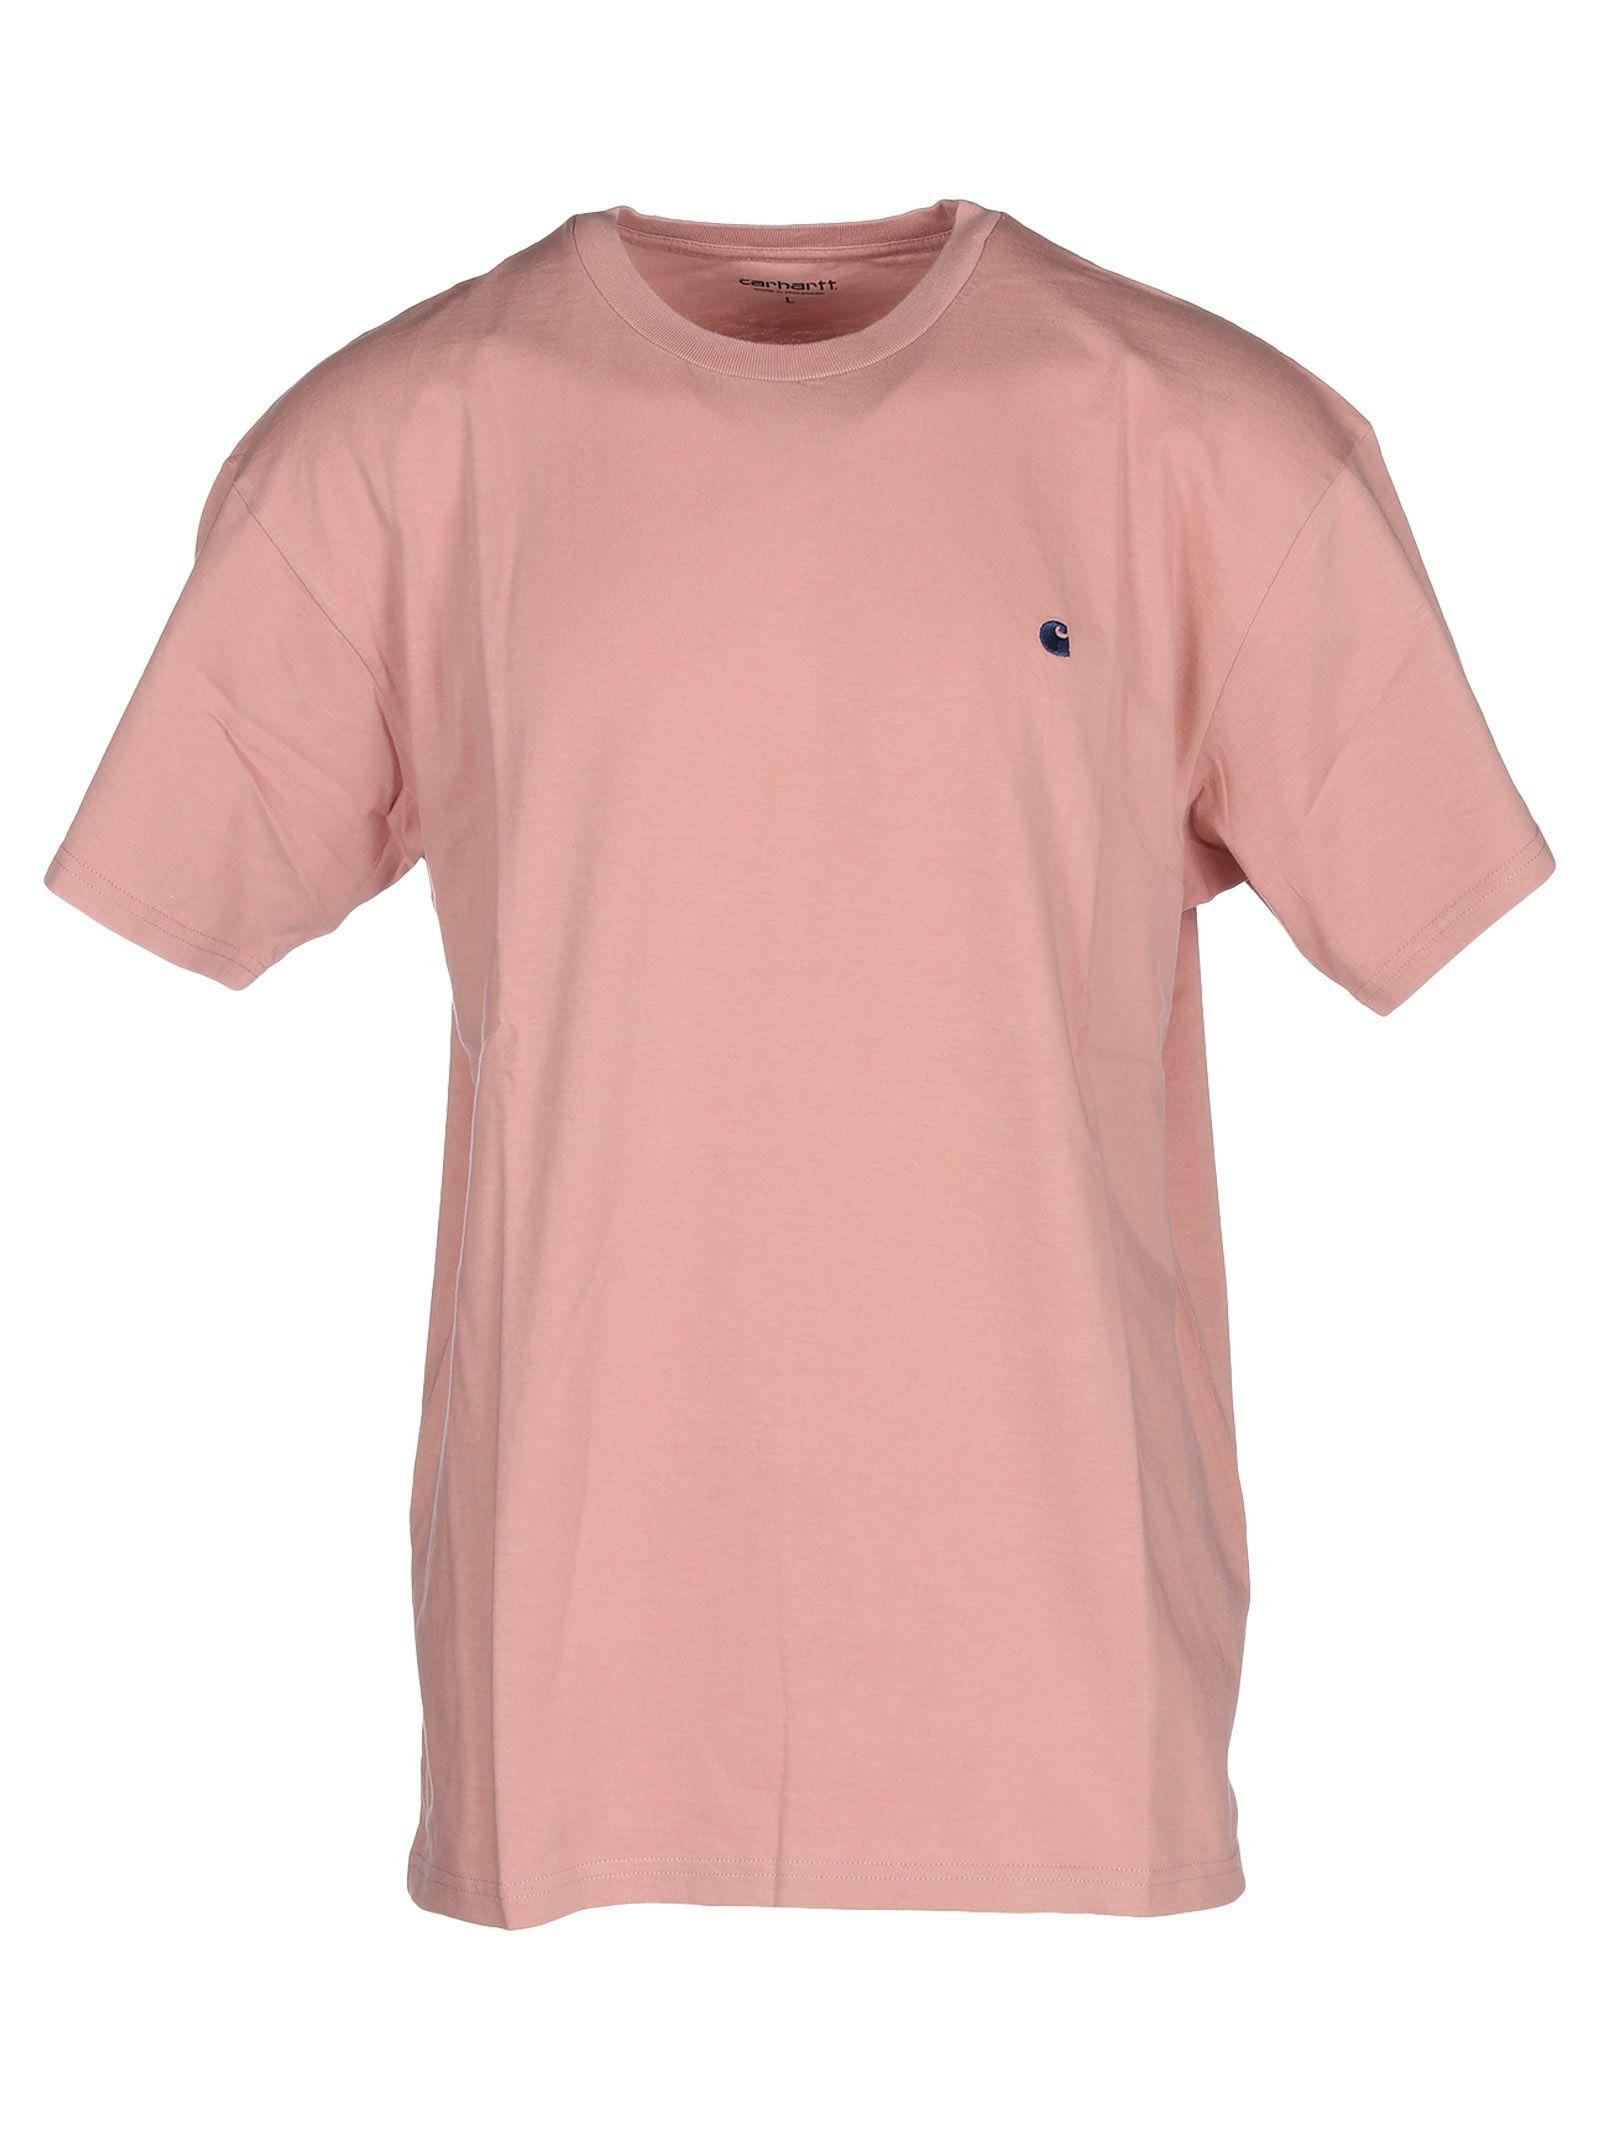 Carhartt Embroidered Logo T-shirt In Pink